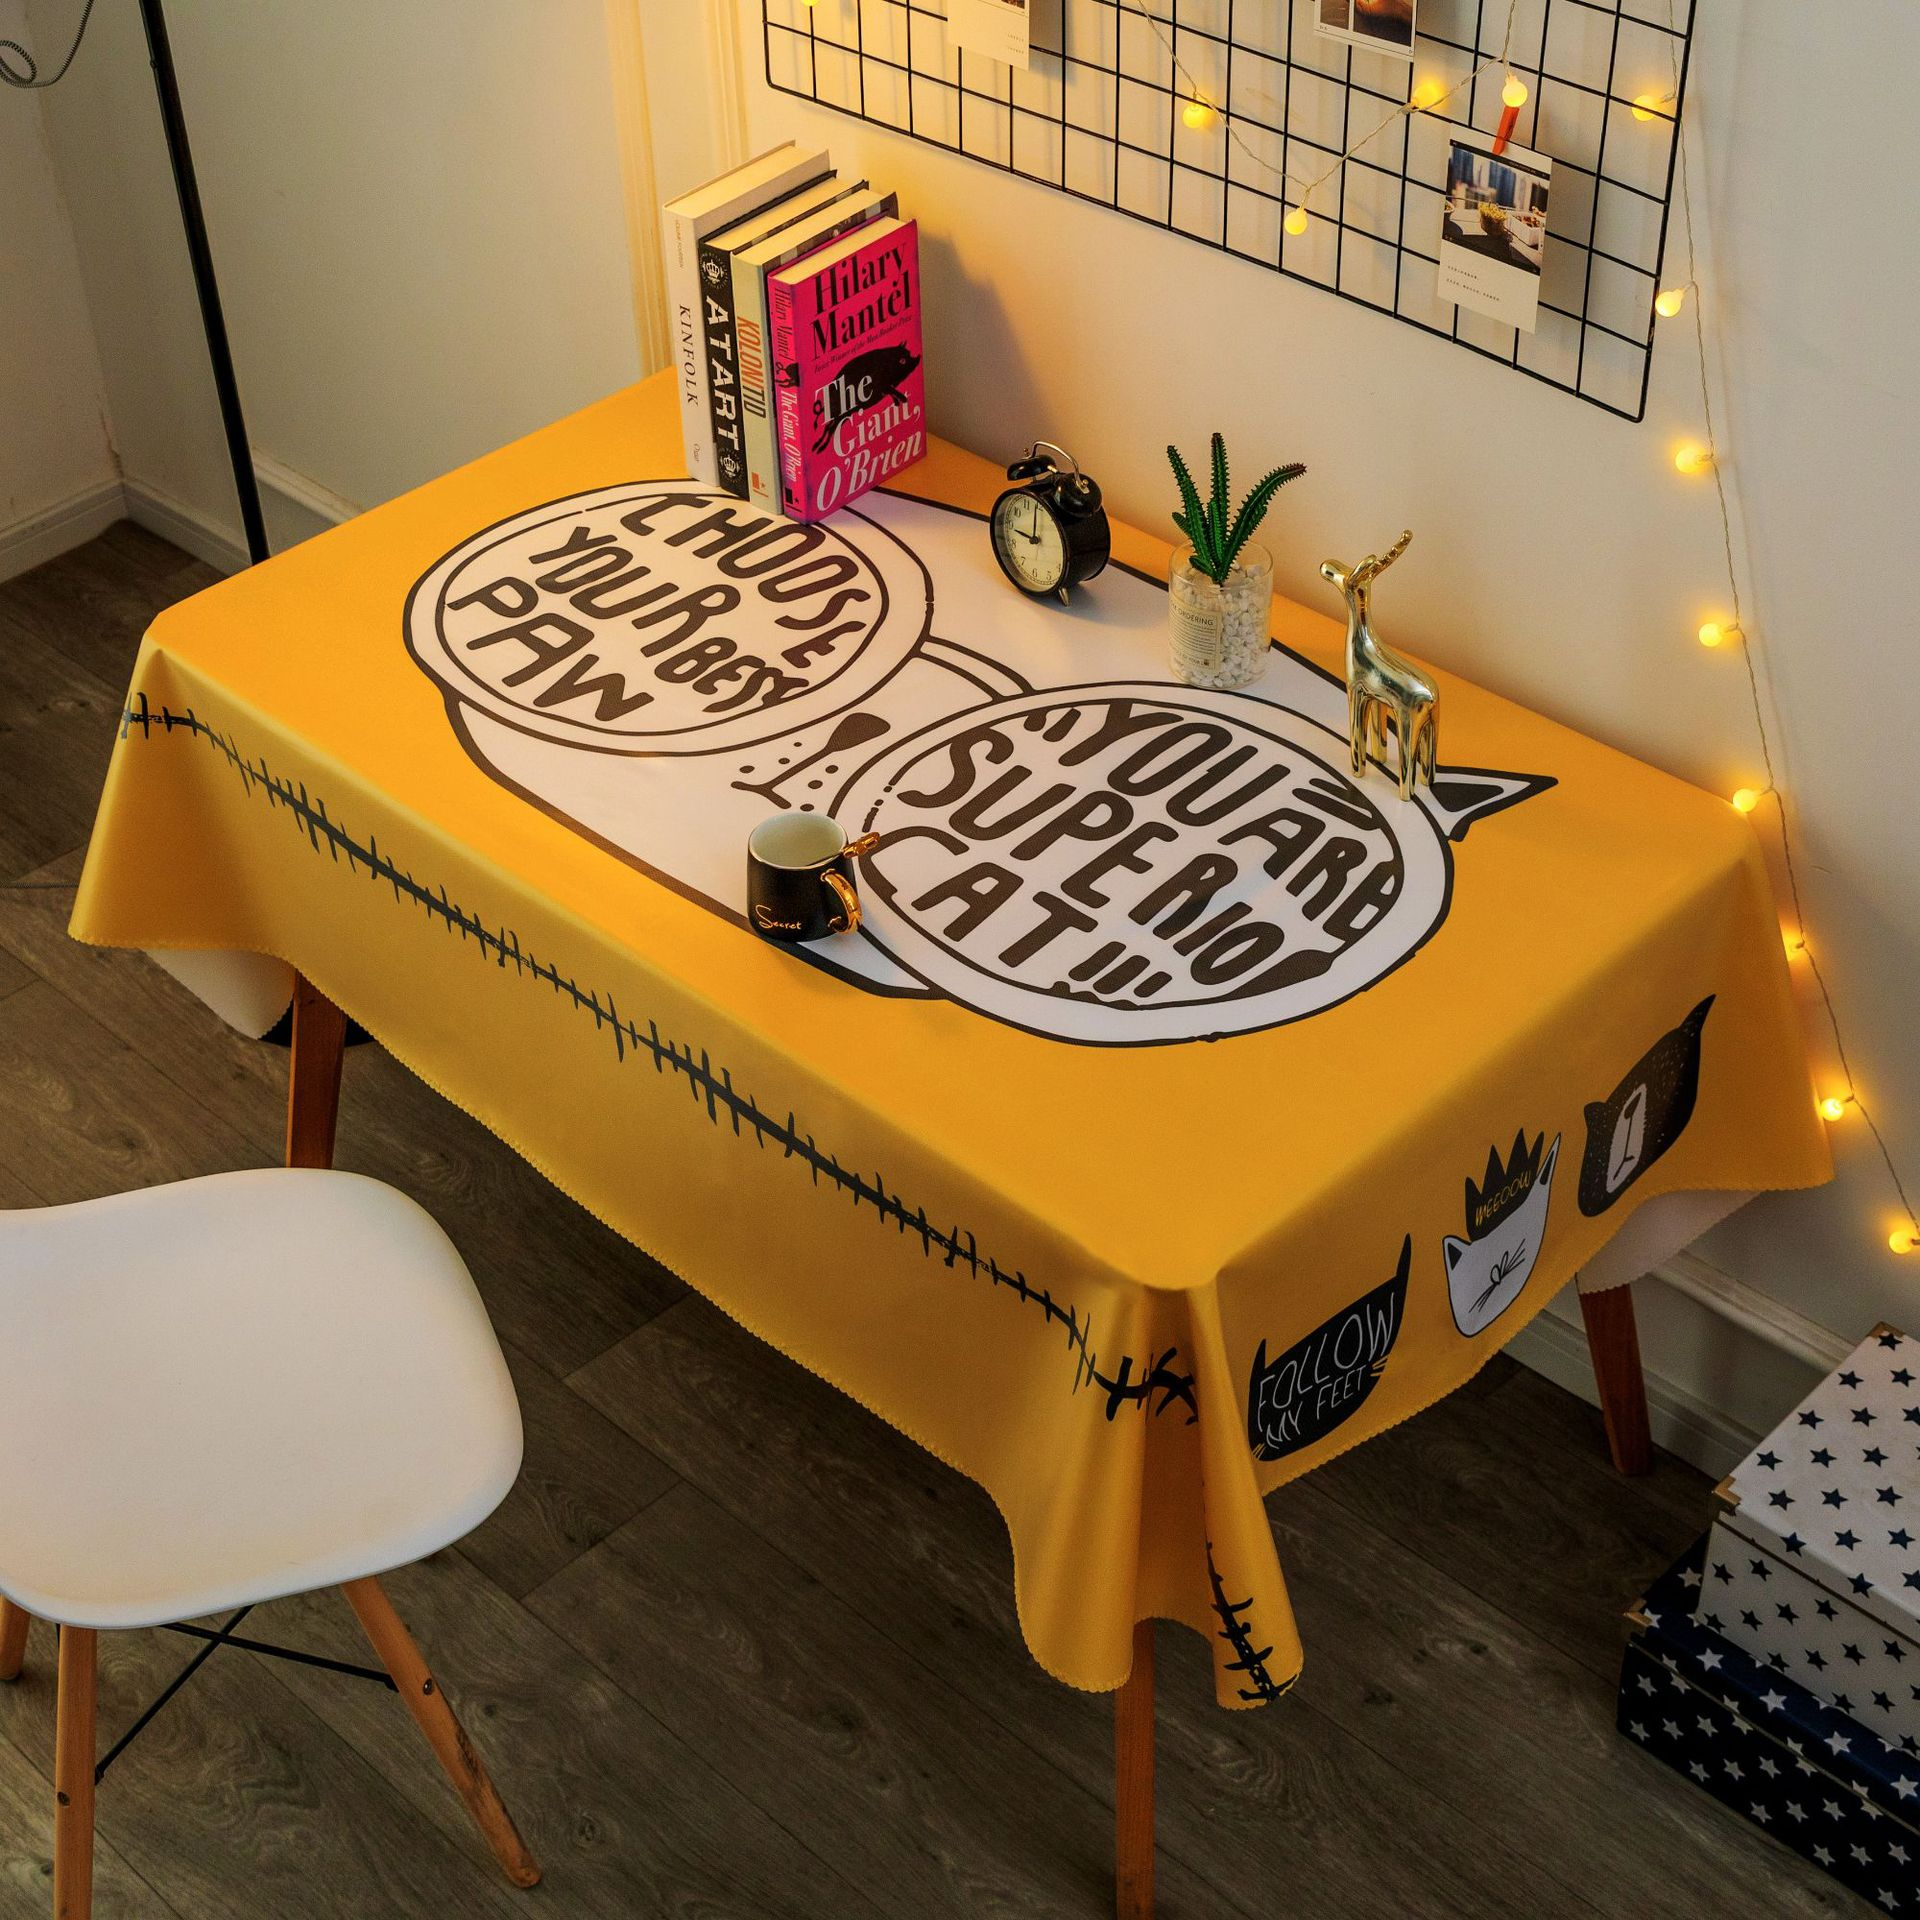 Captivating Waterproof Tablecloth for Improving Elegance